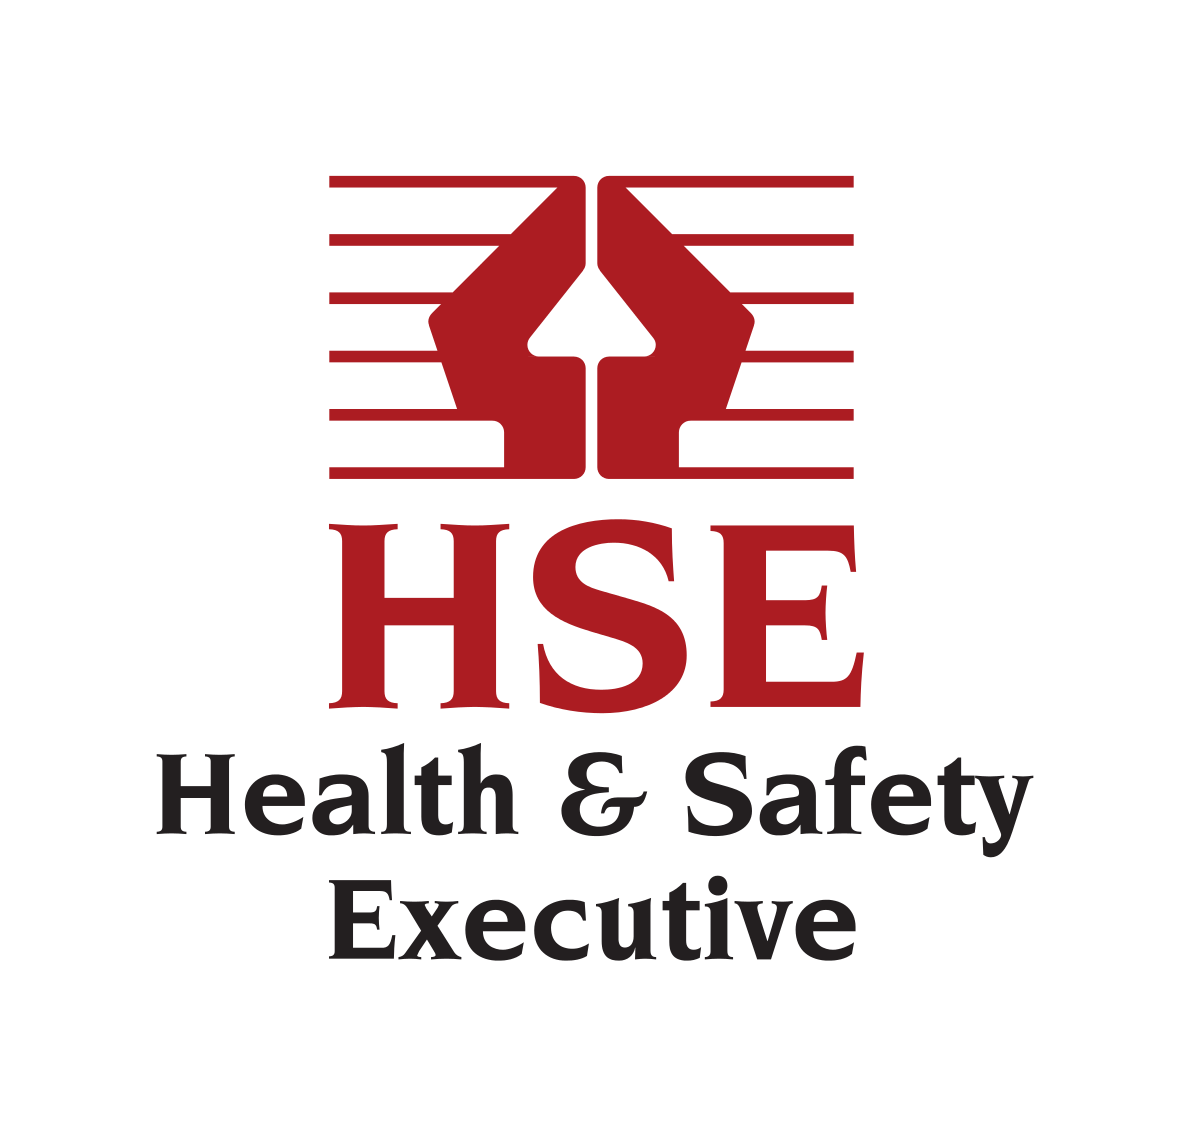 The Health and Safety Executive (HSE) has released a new mobile app.